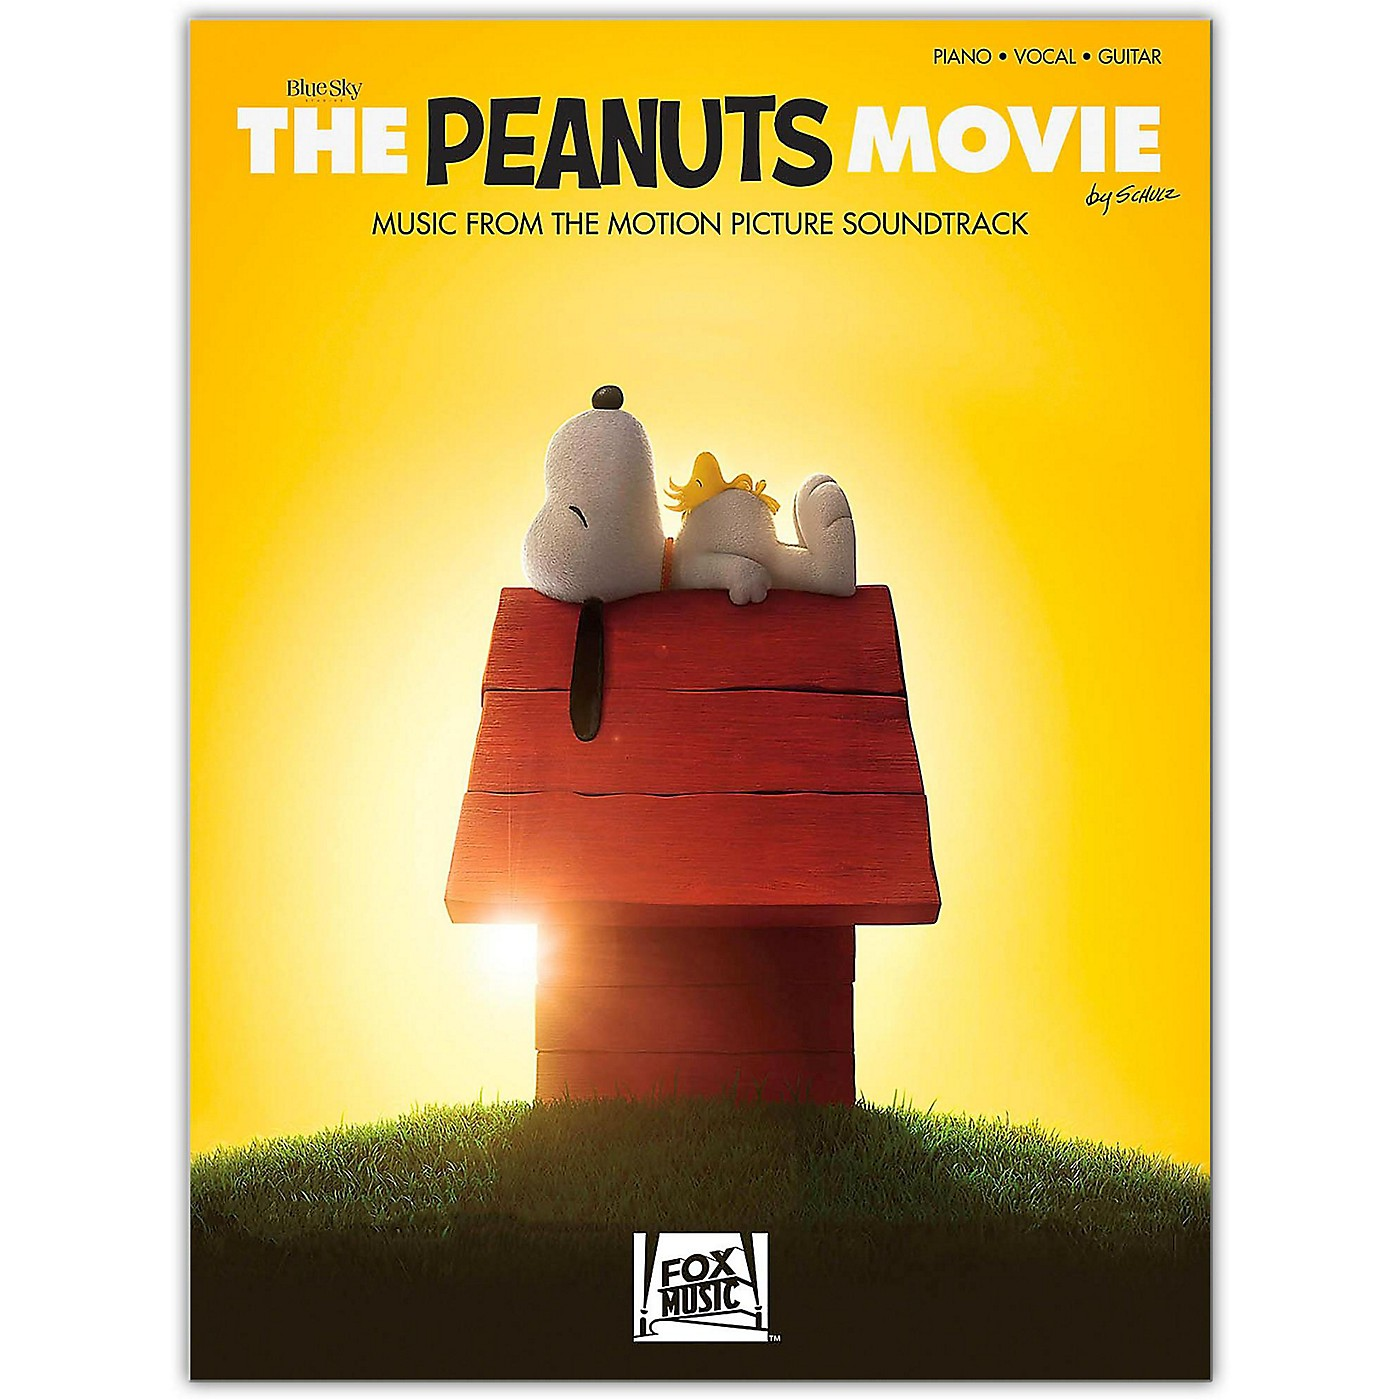 Hal Leonard The Peanuts Movie - Music from the Motion Picture Soundtrack  Piano/Vocal/Guitar Songbook thumbnail